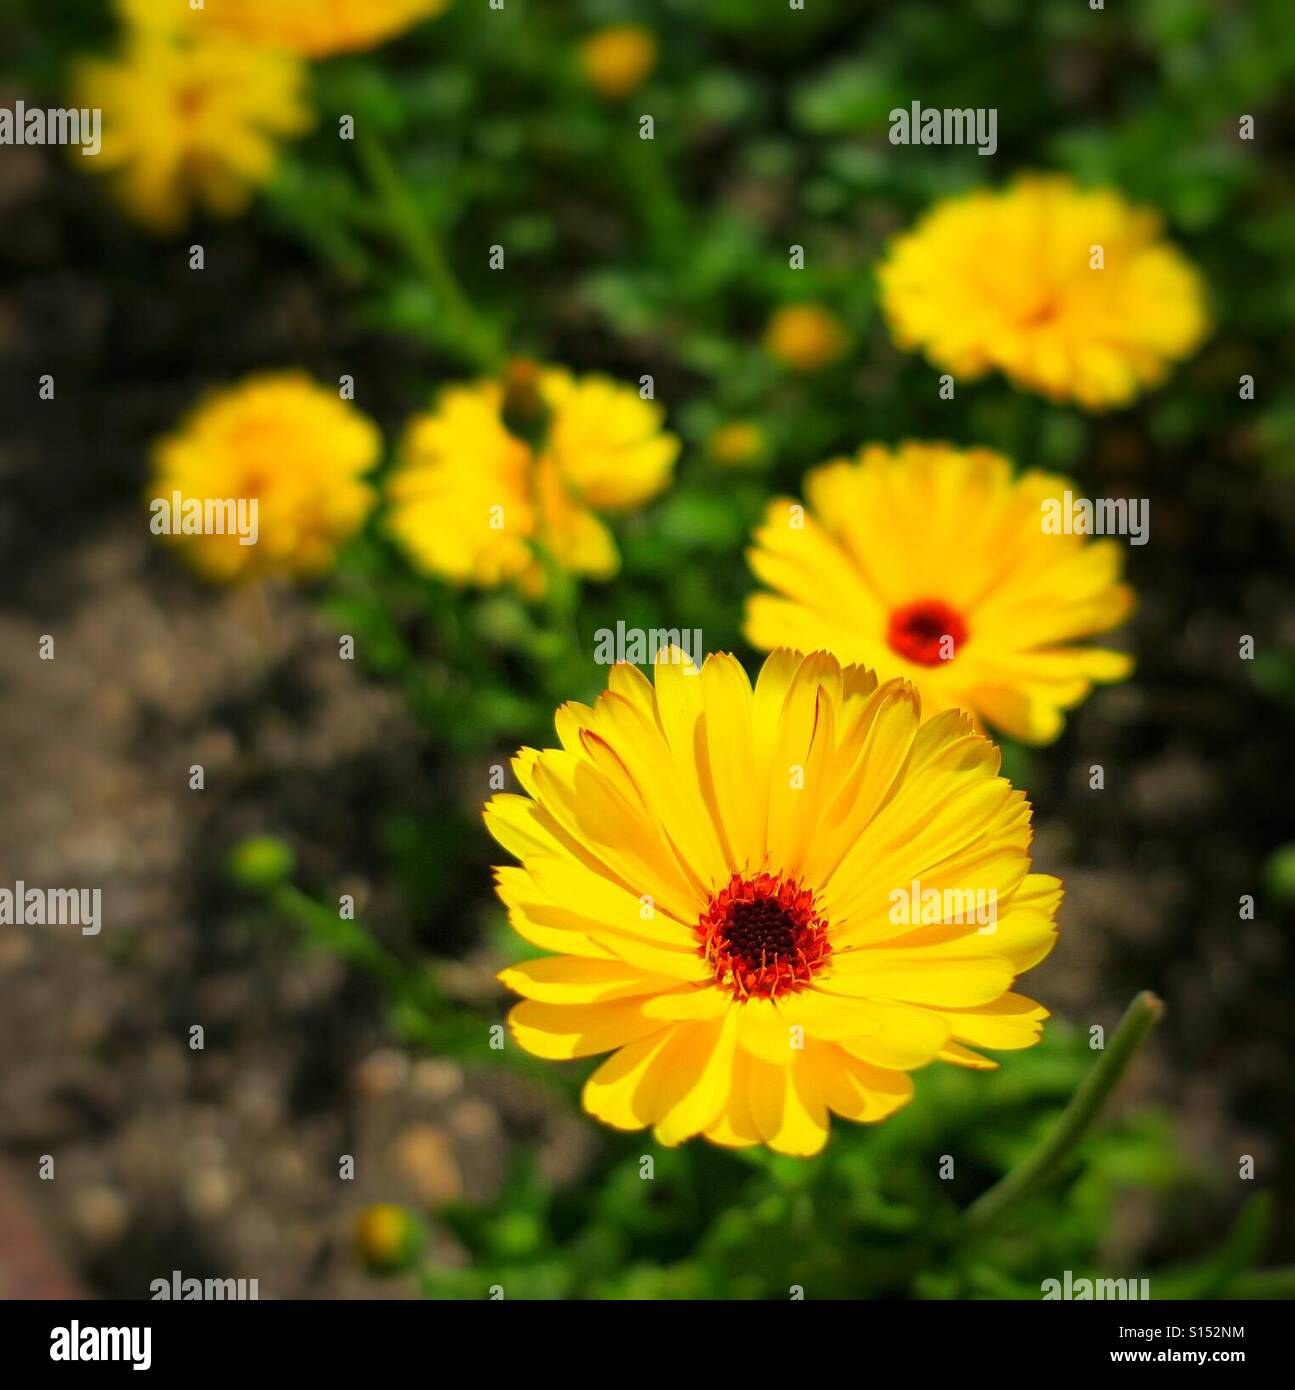 Yellow flowers with red centres in an English garden - Stock Image